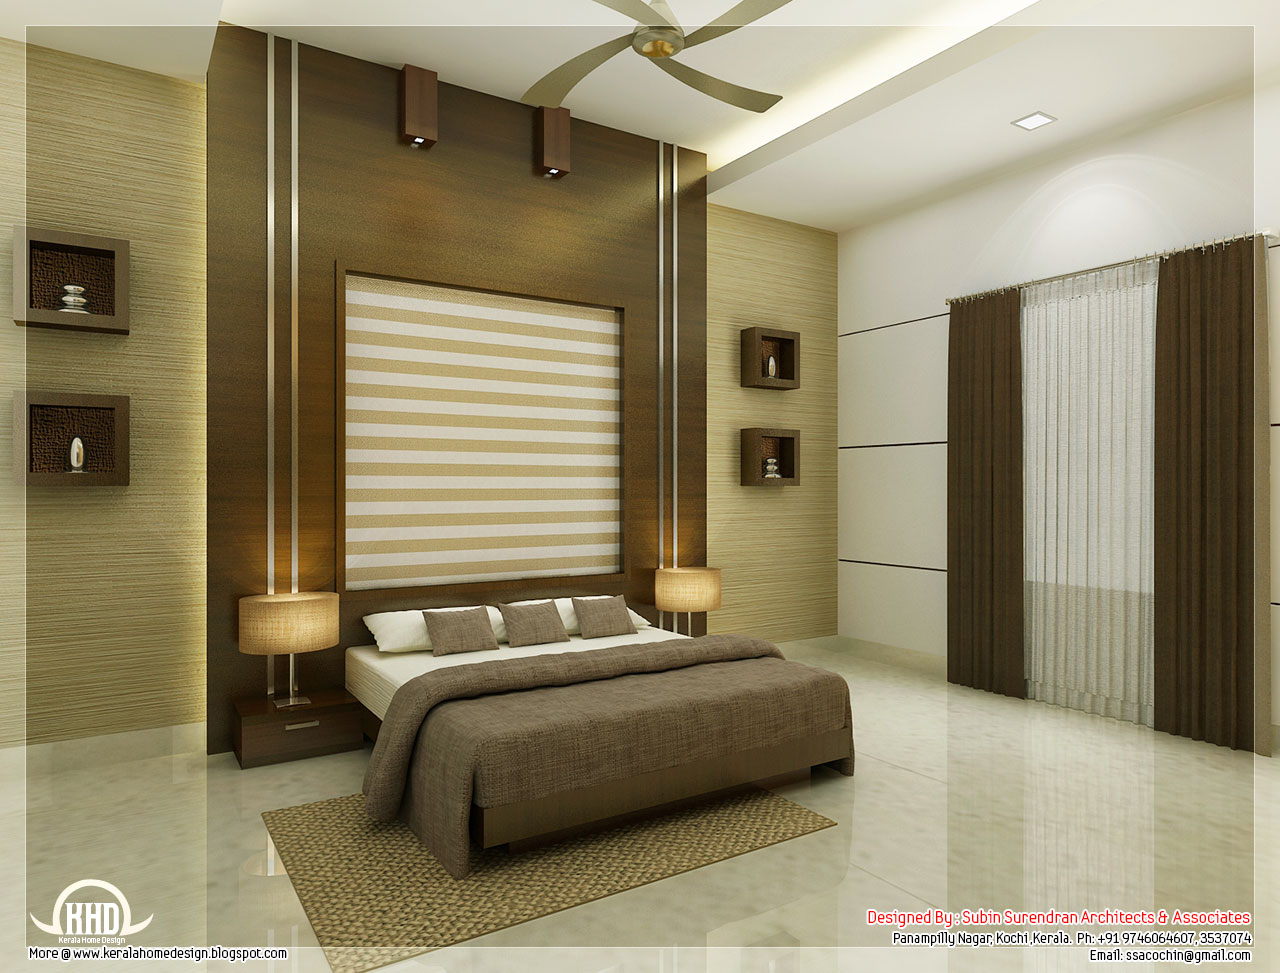 Beautiful bedroom interior designs kerala home design for House interior design ideas